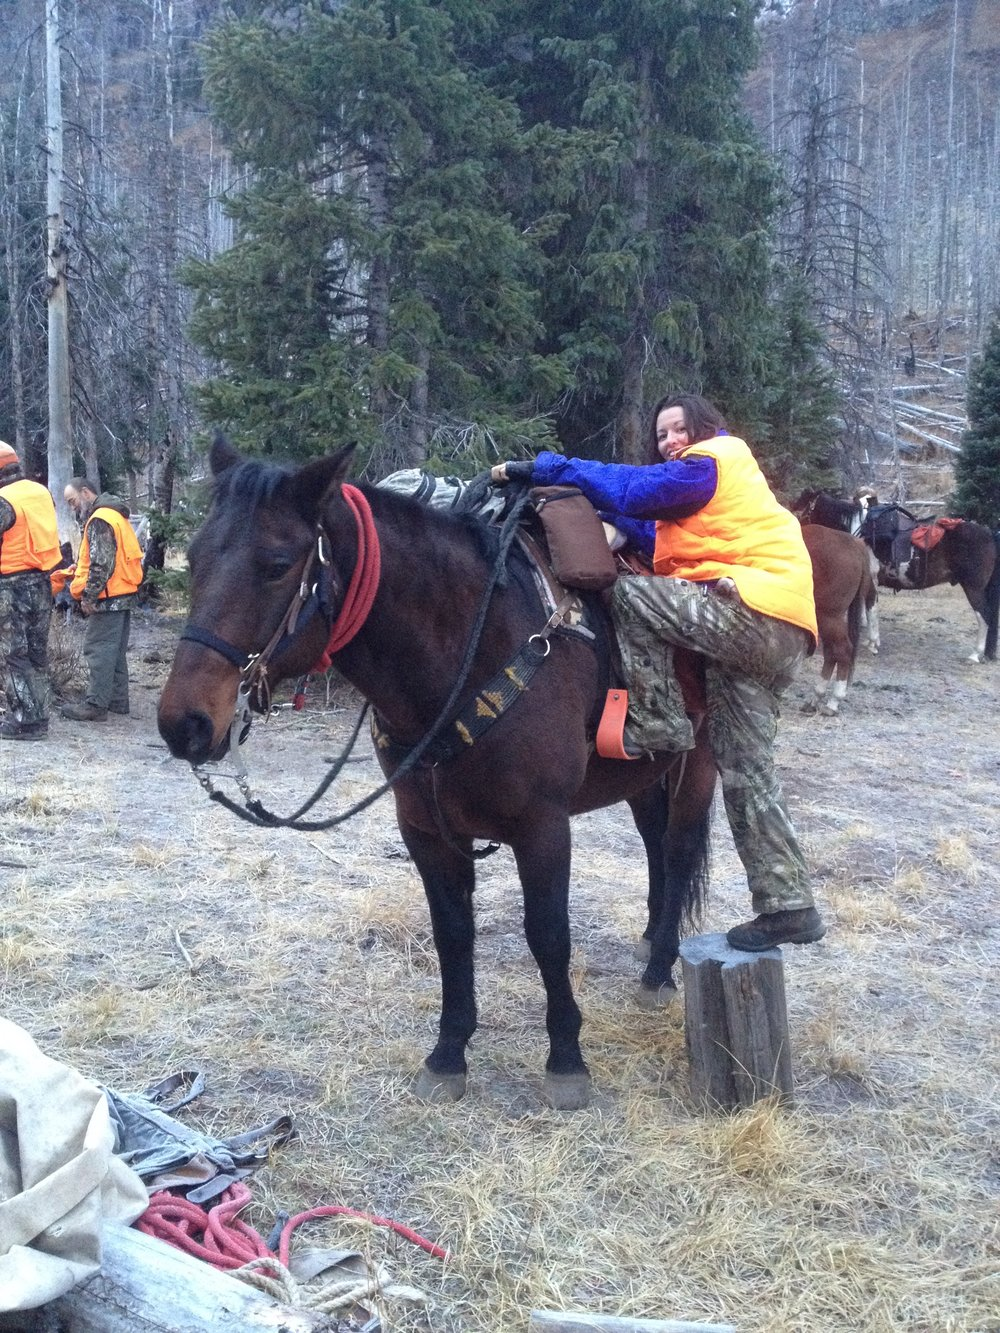 This is Woody. He is a very tall horse that required me finding a stump, rock, helping hand, whatever I could to crawl on his back. He was my mode of transportation for 3 of the 7 days hunting and camping. He delivered me across many miles and crazy switchbacks I just pretended didn't exist. I requested a Shetland pony for next year.   #woody#wildernesscamping #elkhunting#kaylinngilstrapphoto #thewest #horse